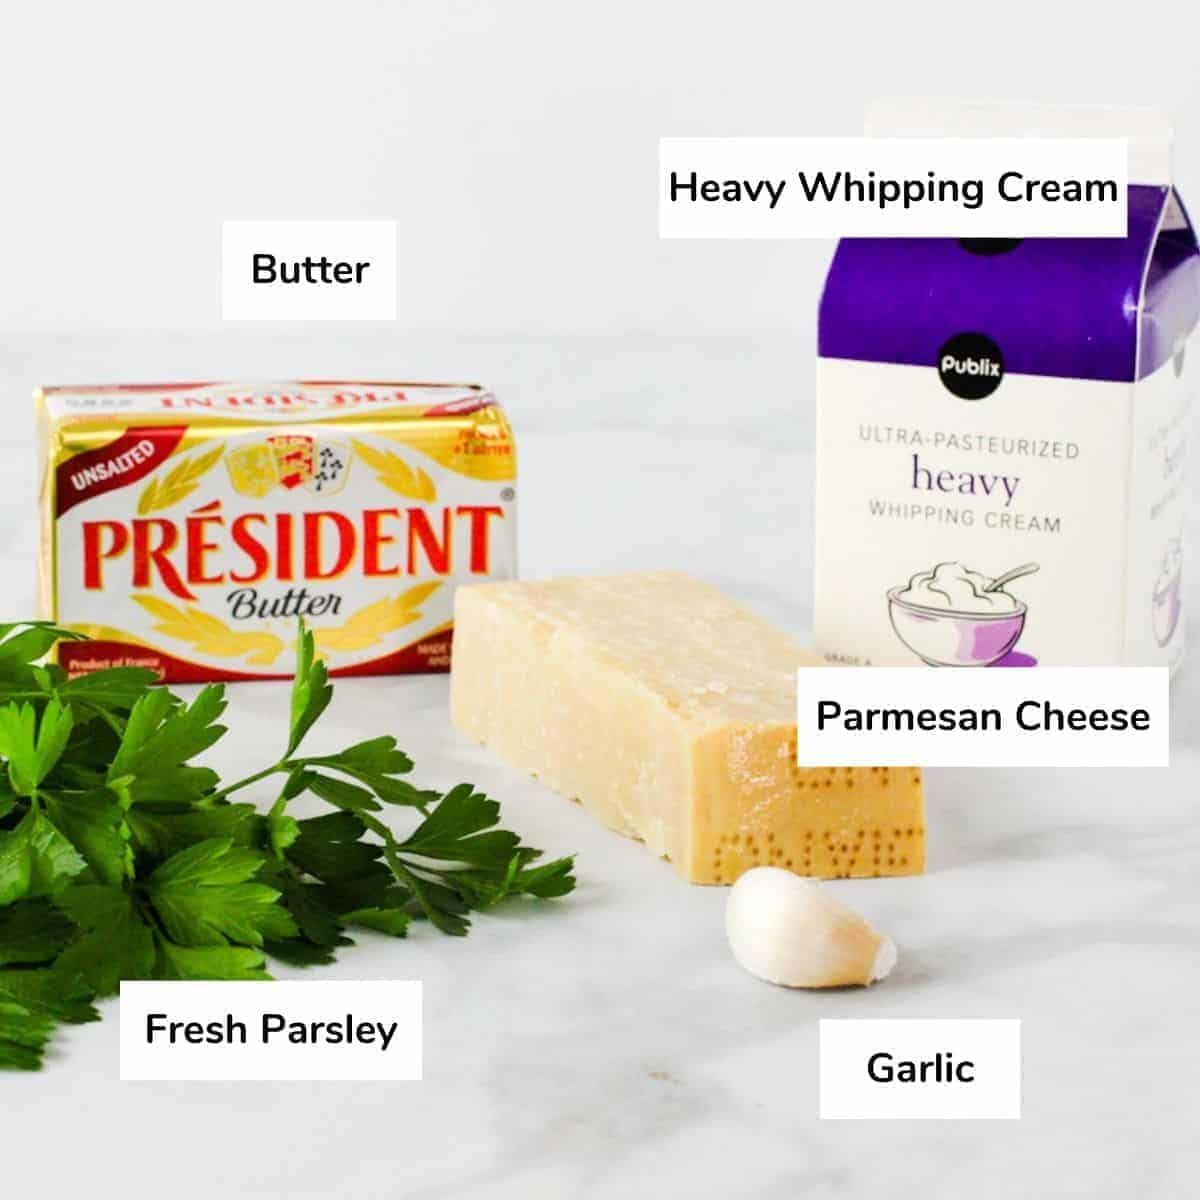 The ingredients for alfredo sauce; butter, heavy whipping cream, Parmesan cheese, garlic, and fresh parsley, are shown set on a counter.